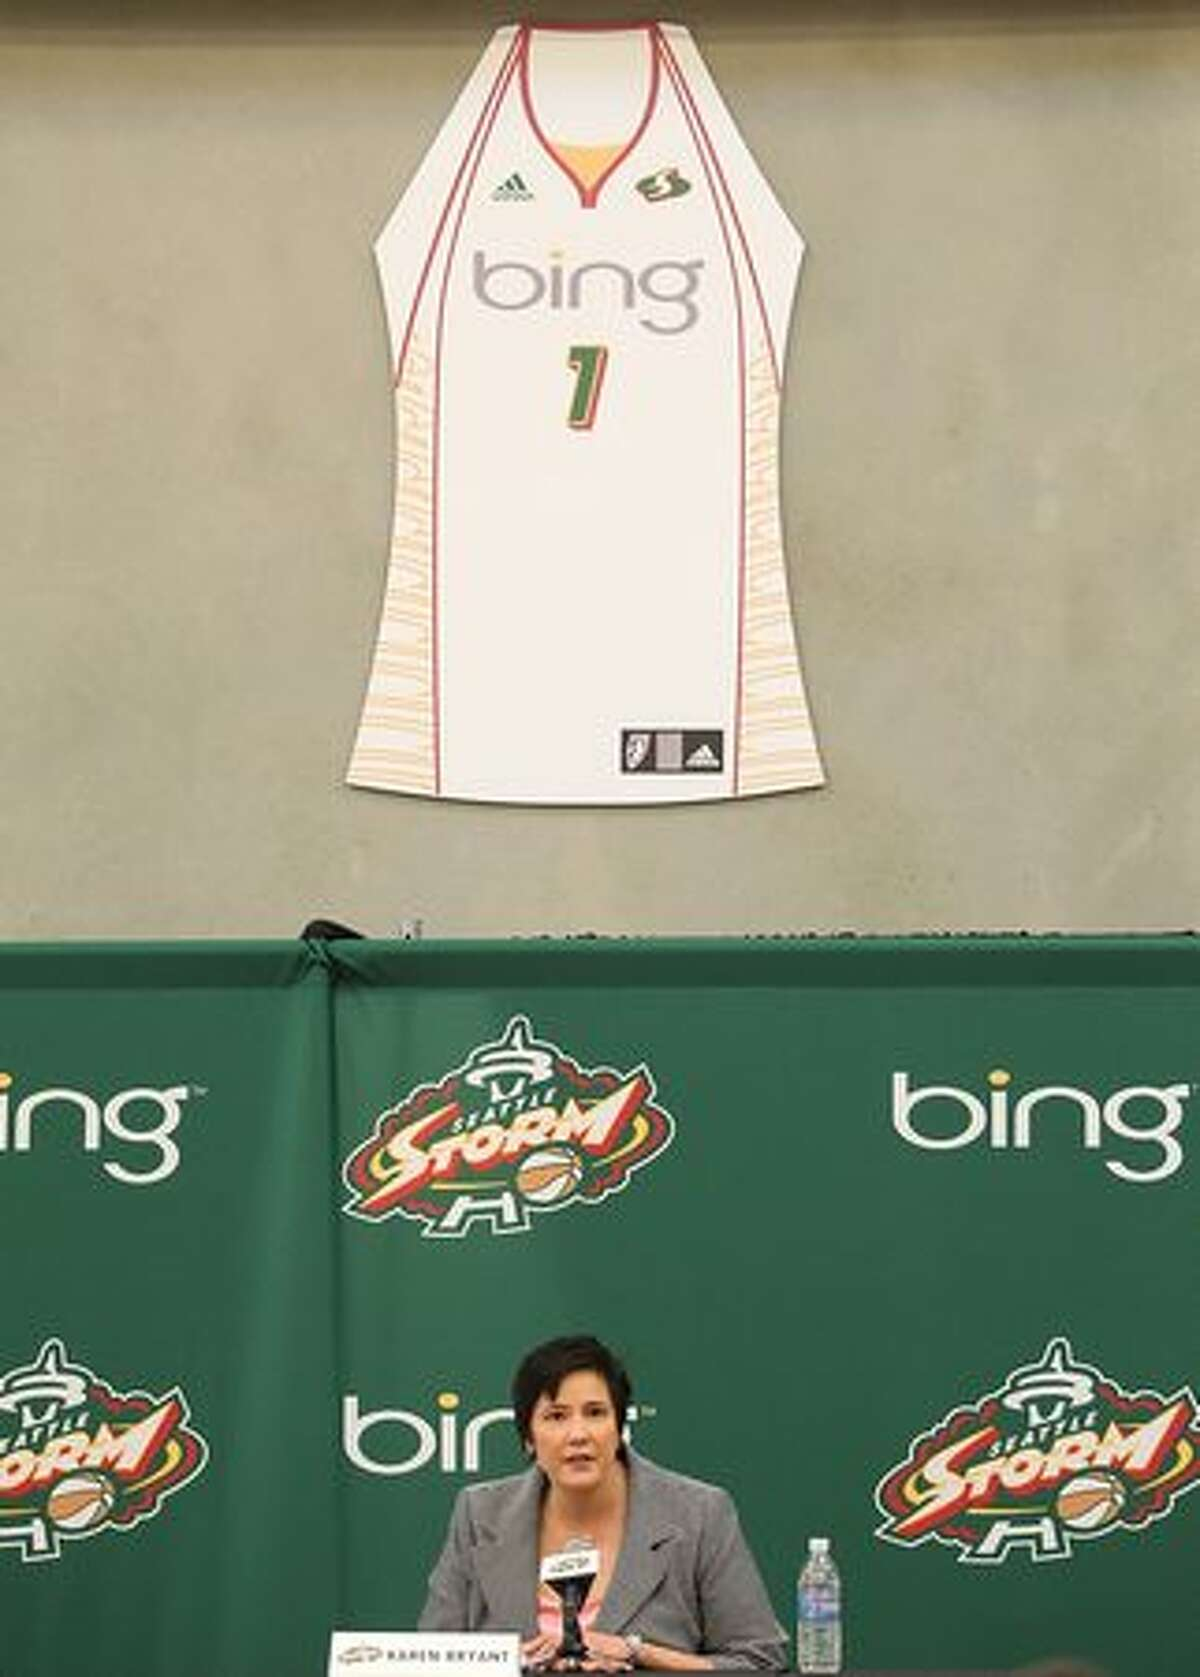 Seattle Storm CEO Karen Bryant announces a sponsorship deal with Microsoft on April 21, 2010, at the Ranier Vista Boys & Girls Club in Seattle. The Storm's new jersey features the Bing logo.